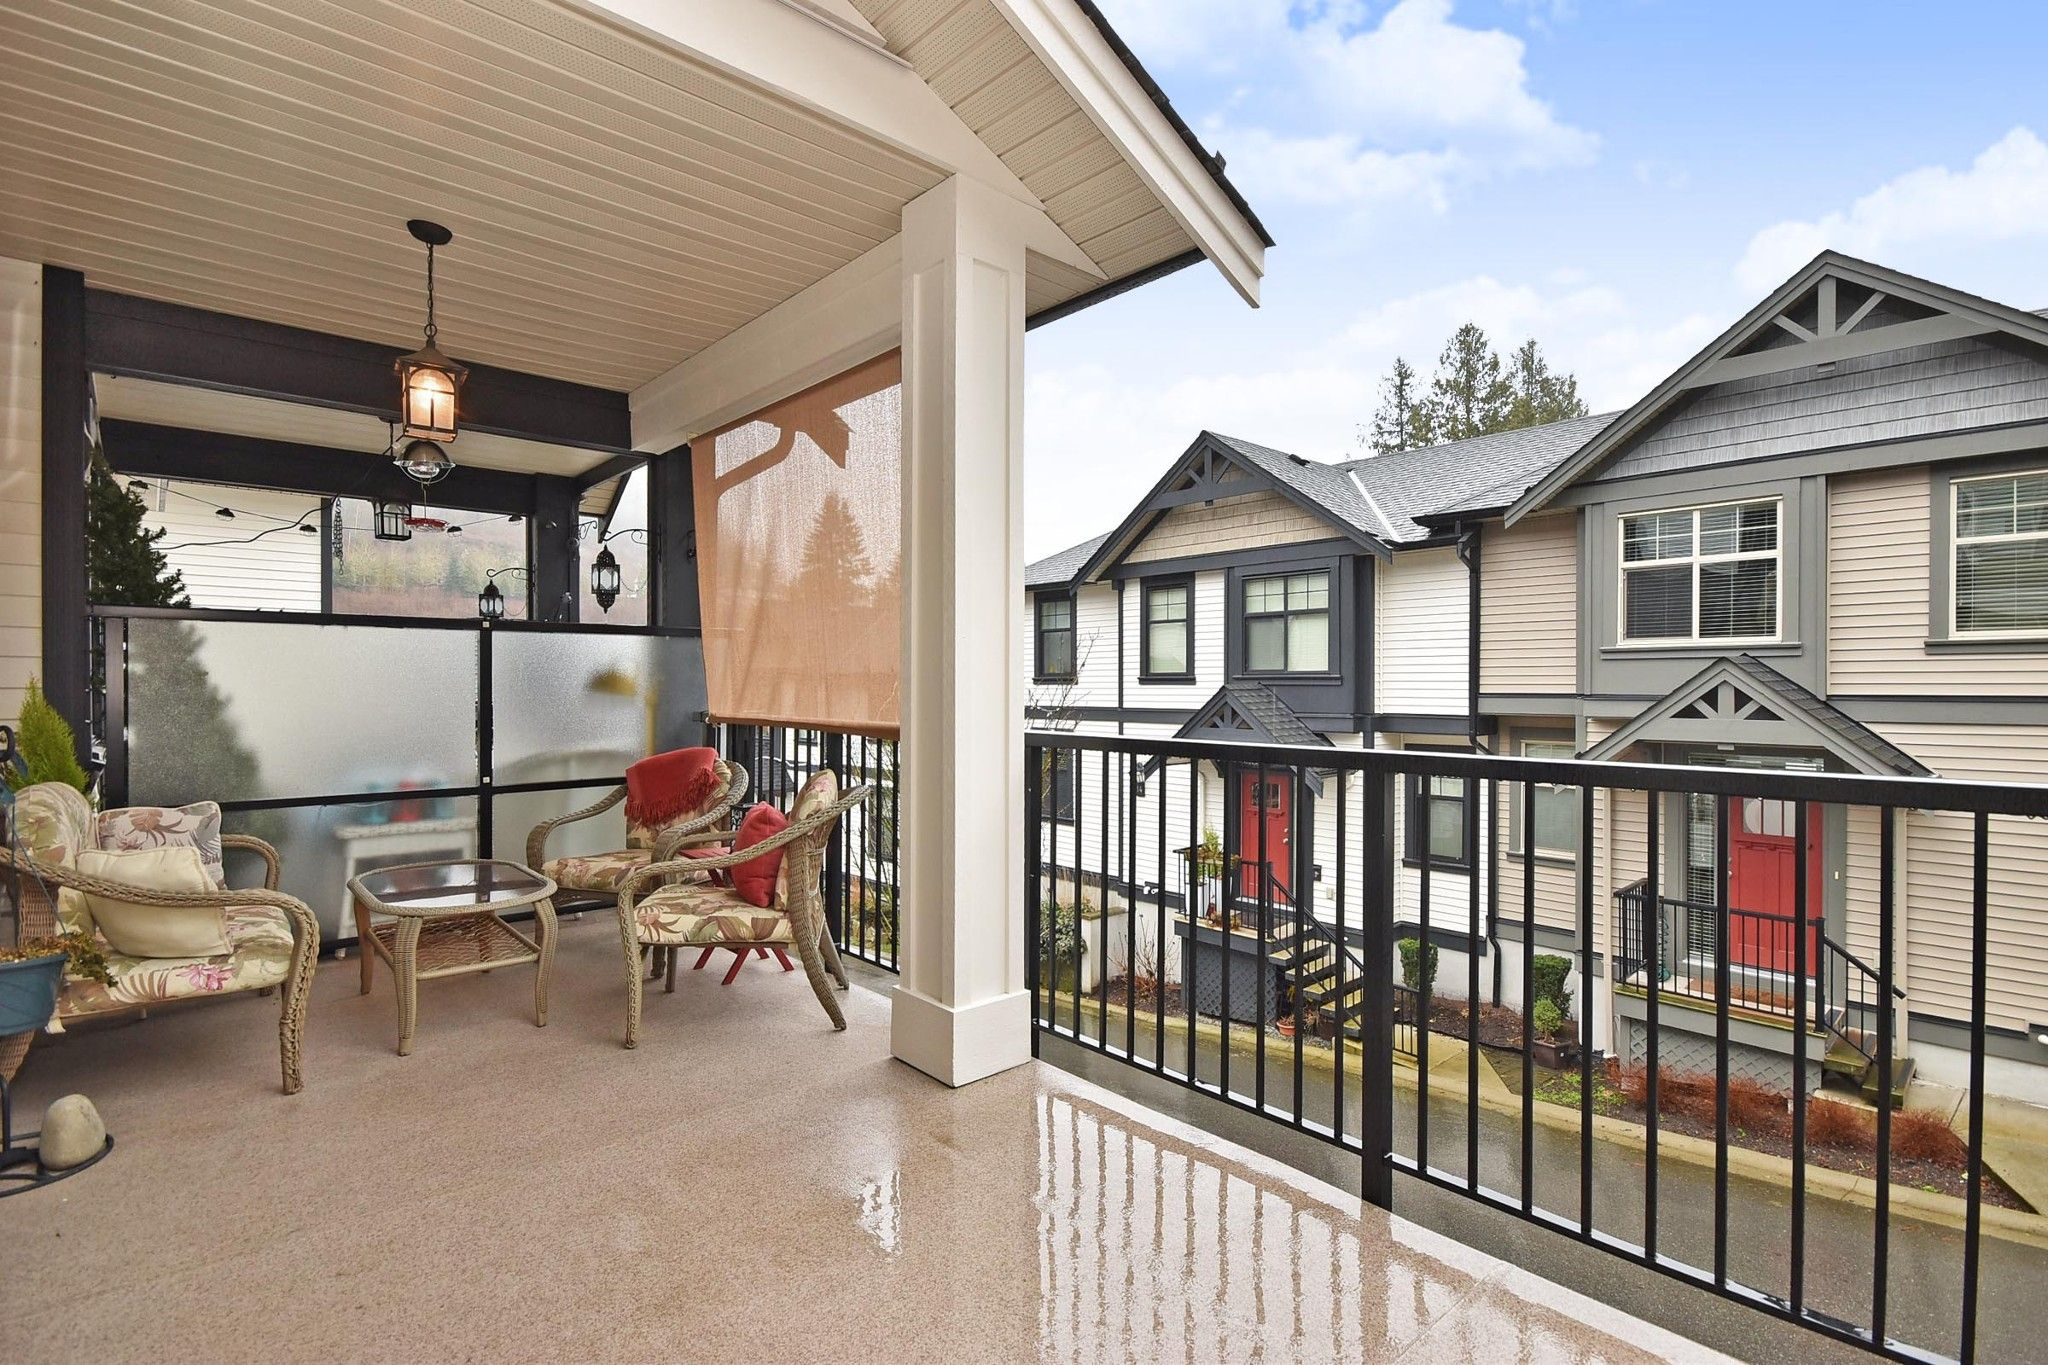 """Photo 19: Photos: 4 35298 MARSHALL Road in Abbotsford: Abbotsford East Townhouse for sale in """"Eagles Gate"""" : MLS®# R2434344"""